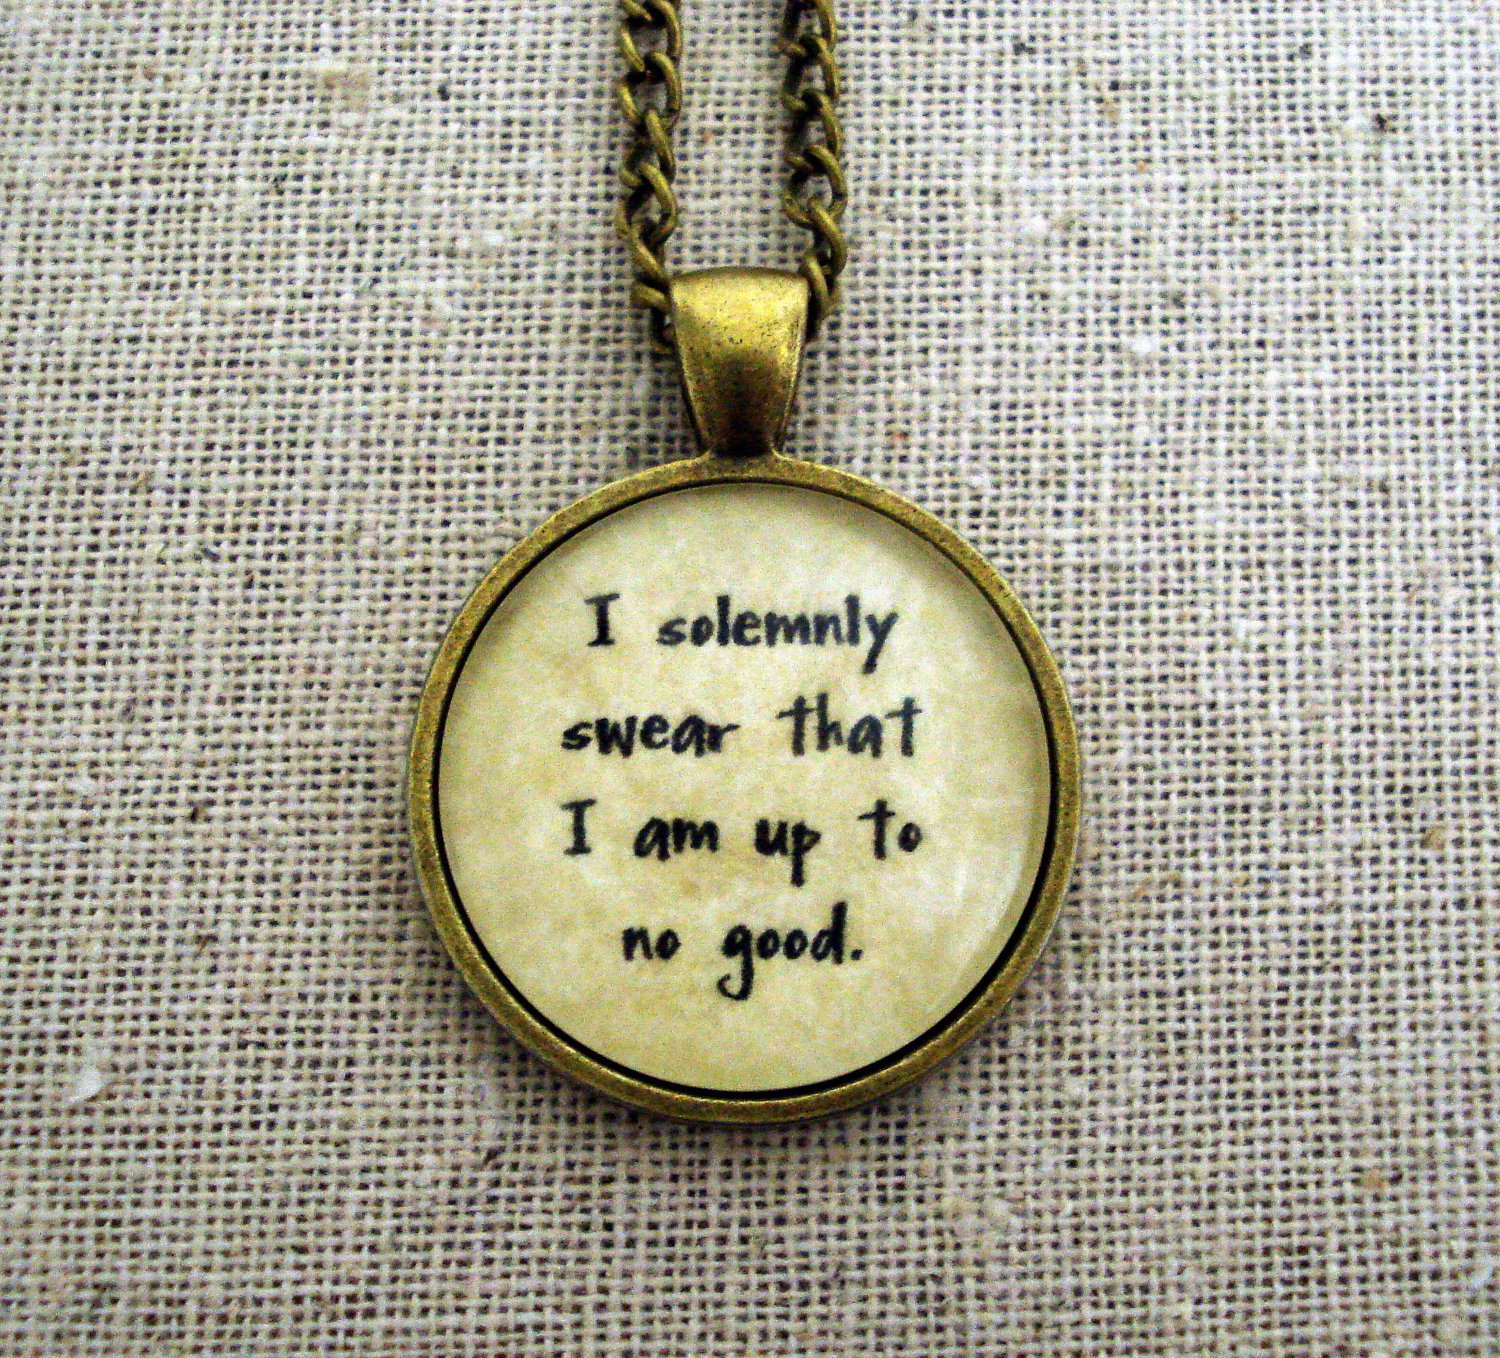 Harry Potter Inspired I Solemnly Swear That I Am Up To No Good Necklace